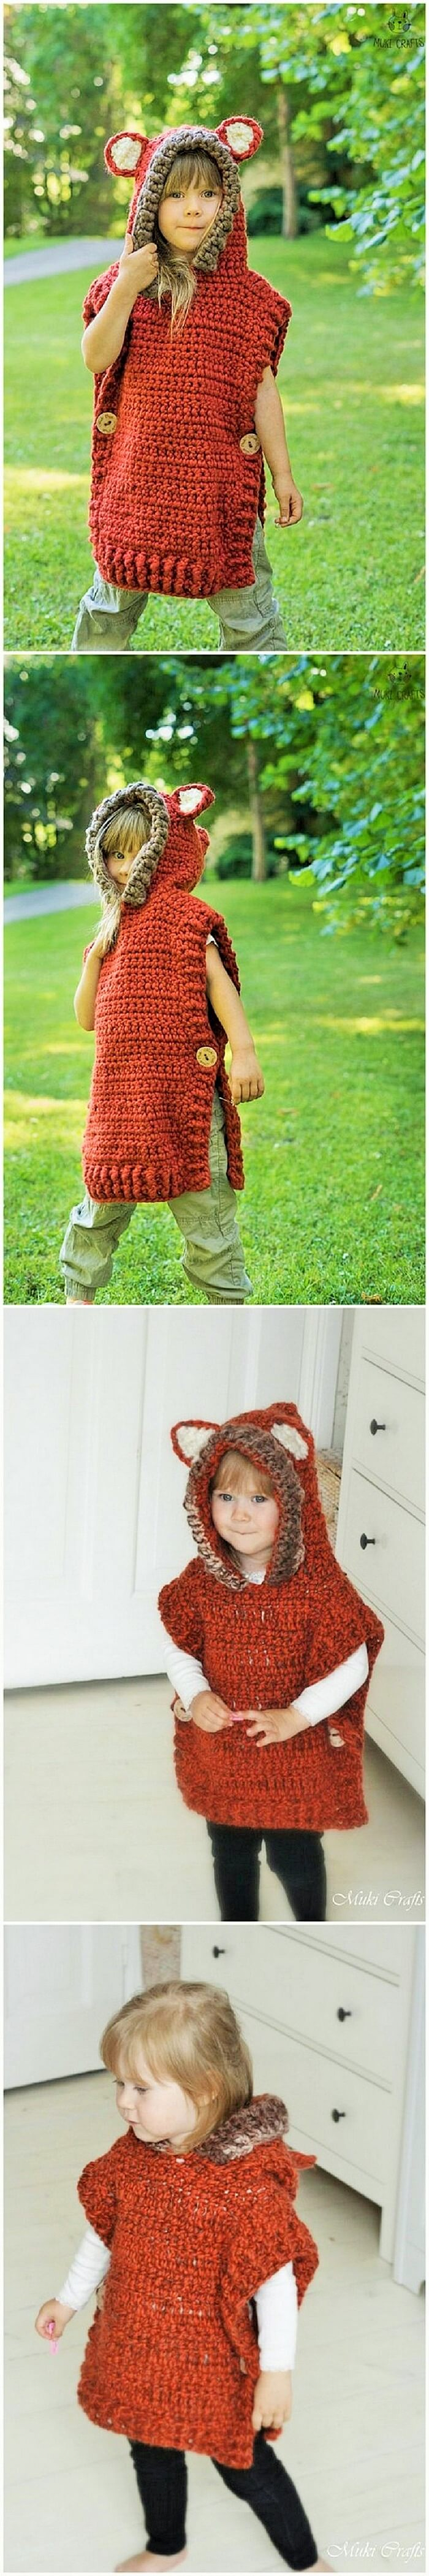 DIY-Homemade- Crochet-Projects-7